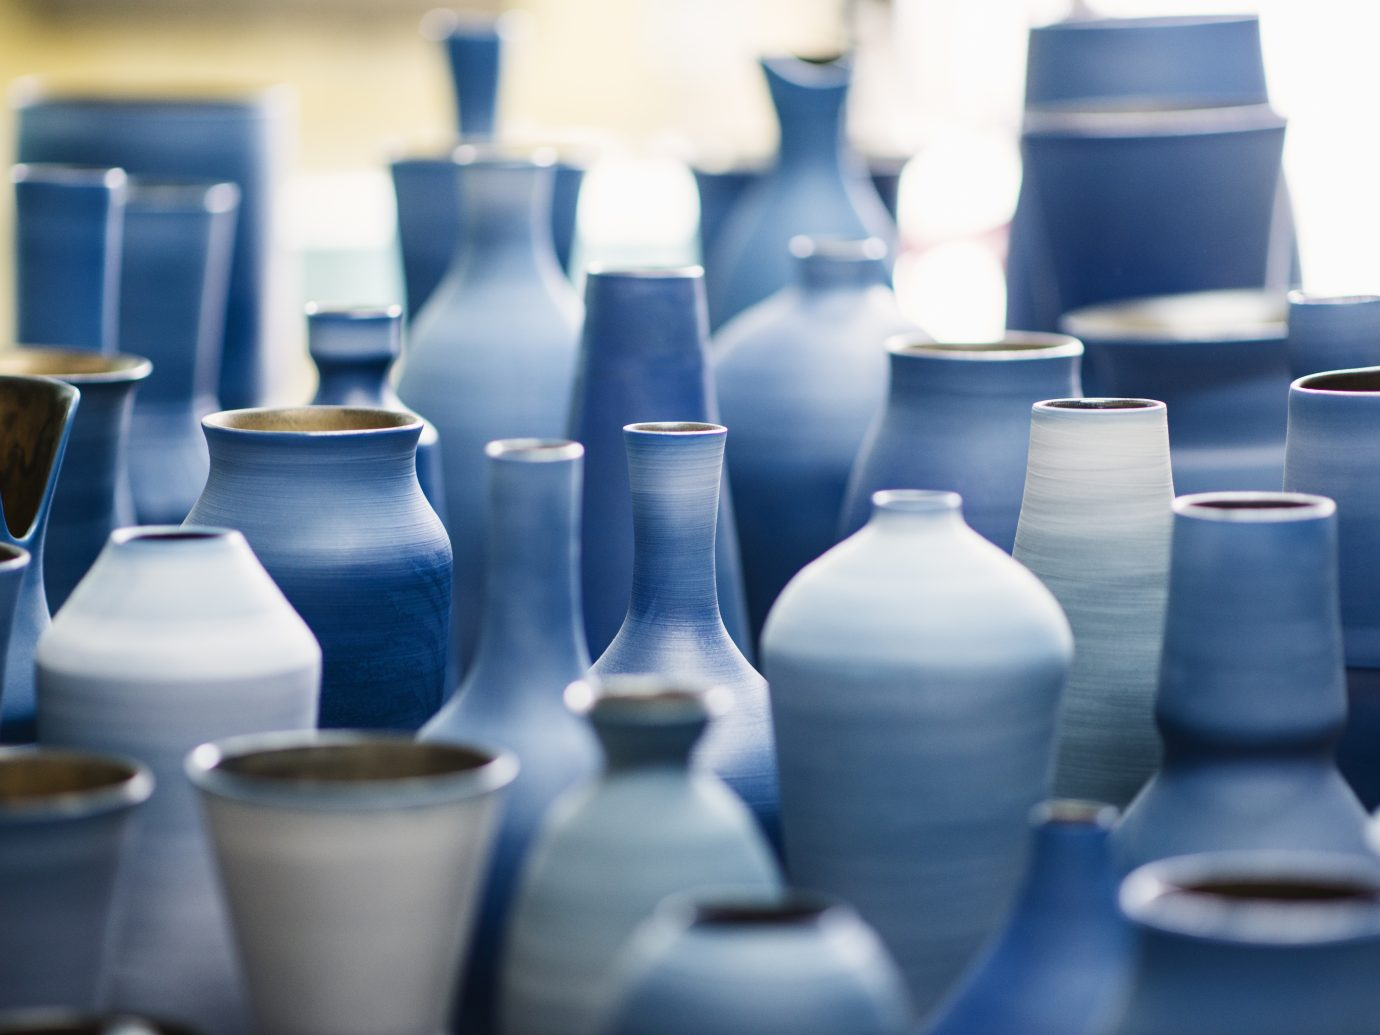 Ceramic pottery in shades of blue